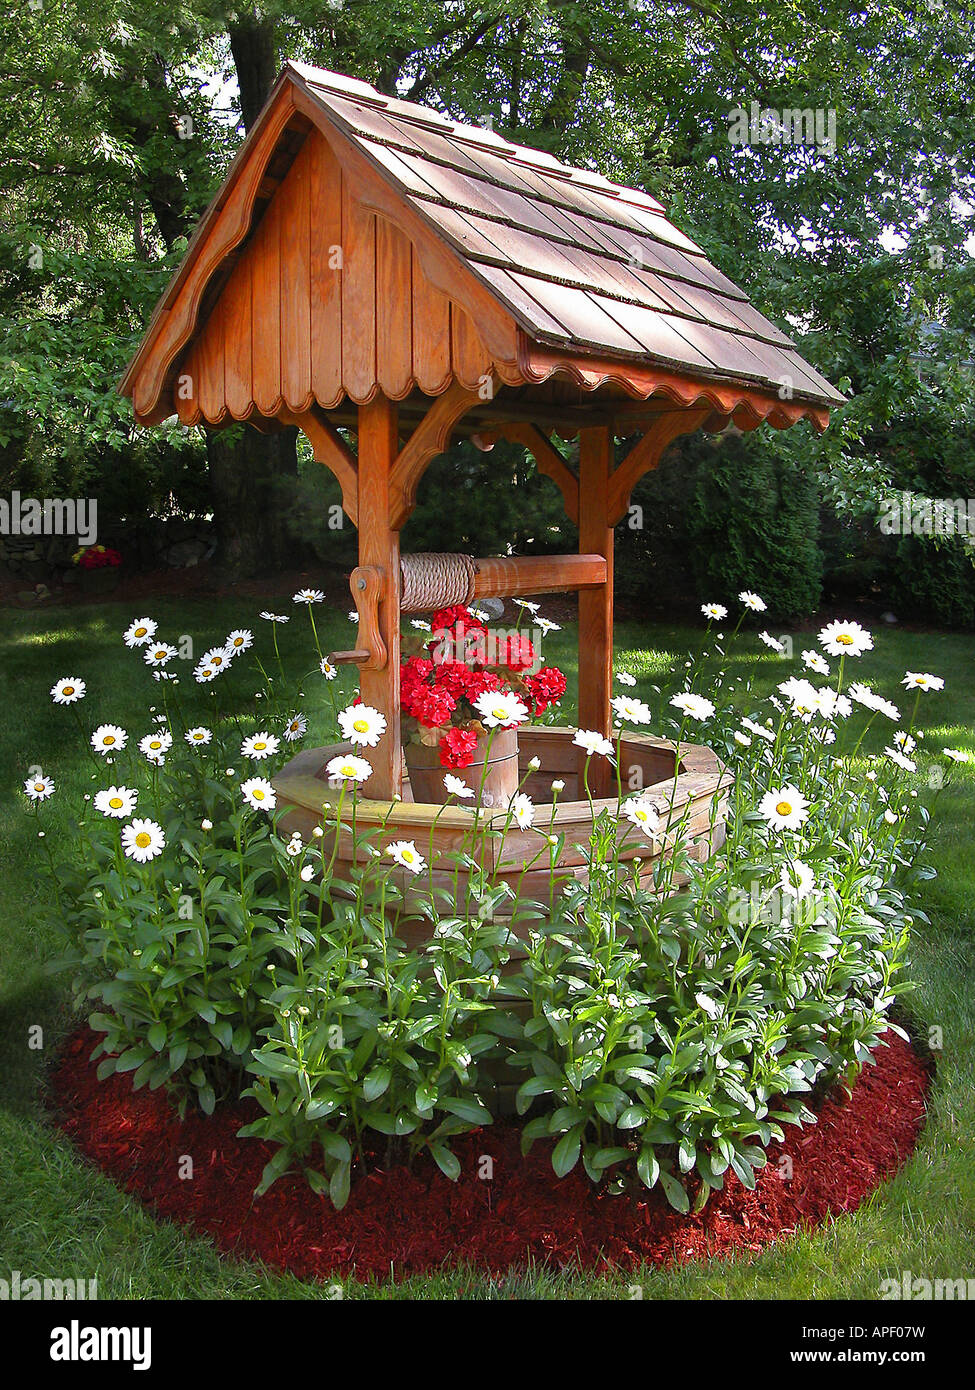 Wishing Well, Made Of Cedar Wood With White Flowers Around In Green,  Manicured Garden